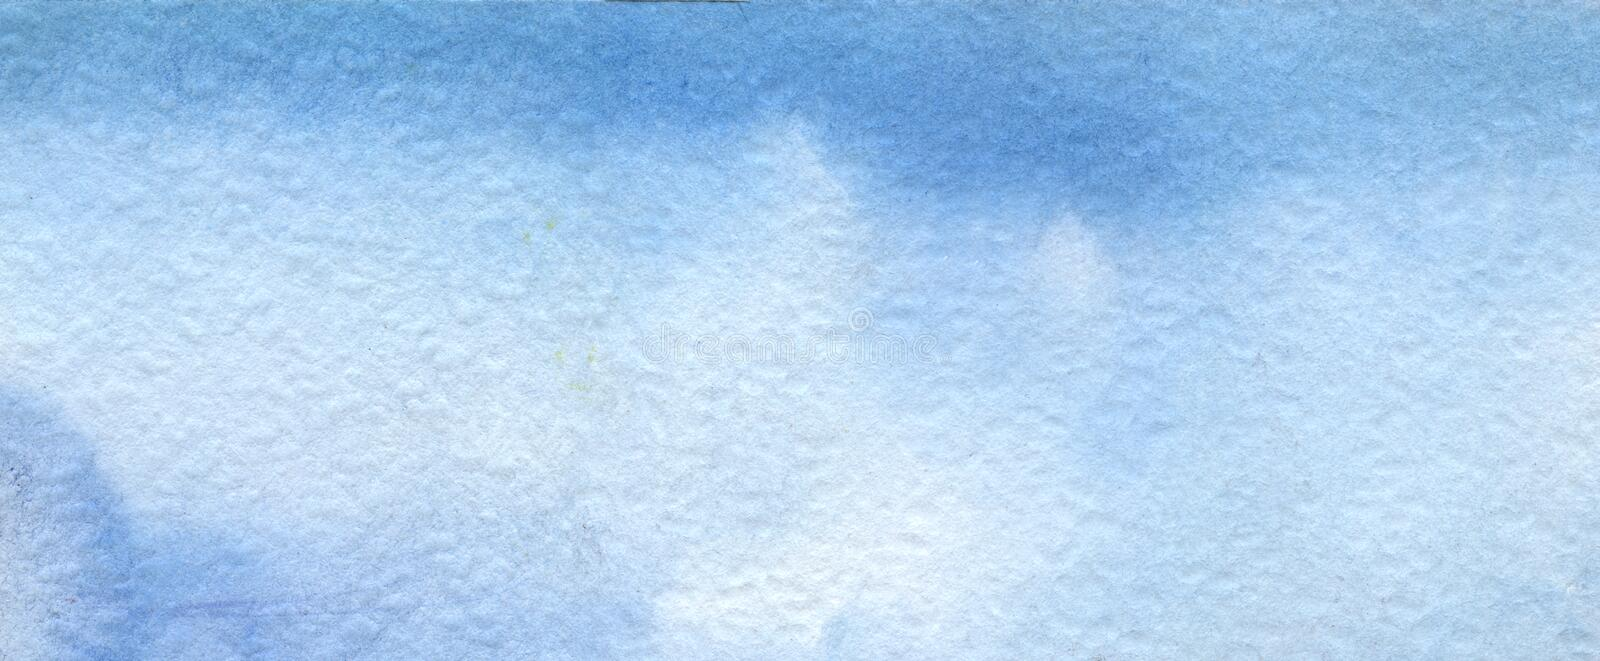 Abstract blue watercolor background. Hand painted on textured paper. Abstract blue watercolor background. Hand painted on a paper royalty free stock image